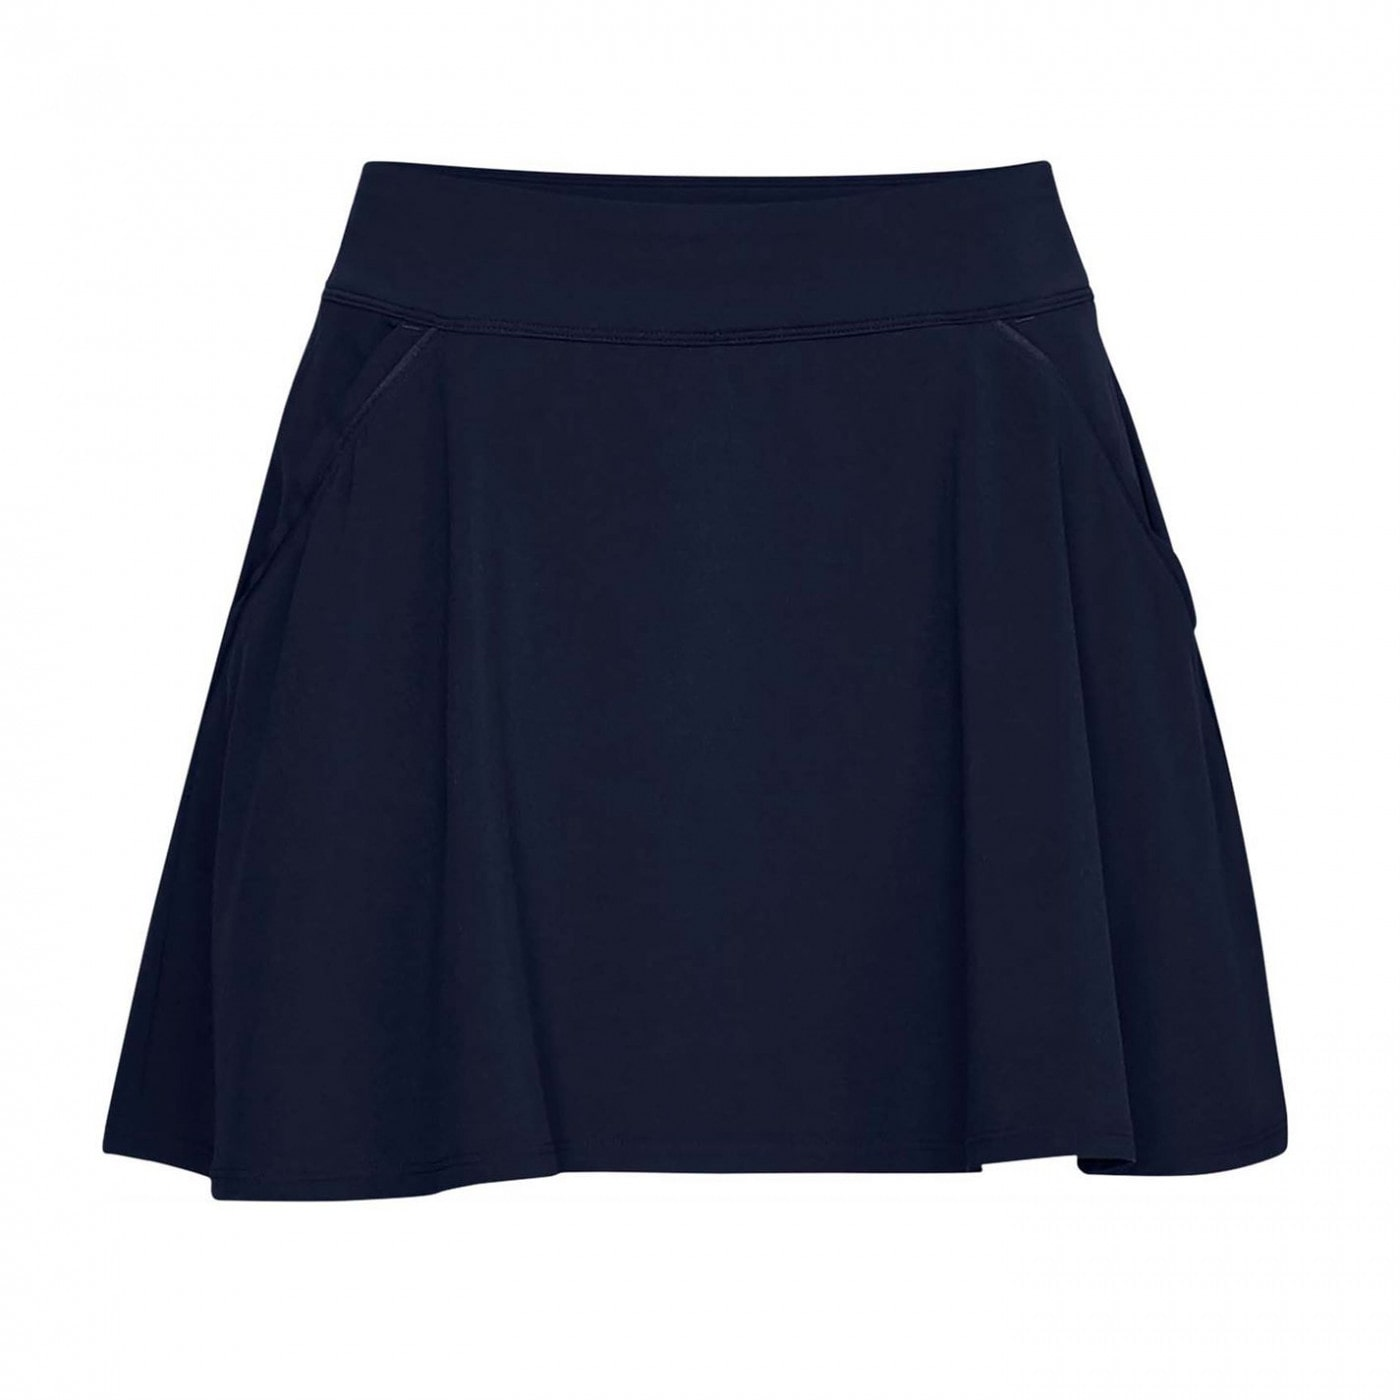 Under Armour Links Skort Ladies